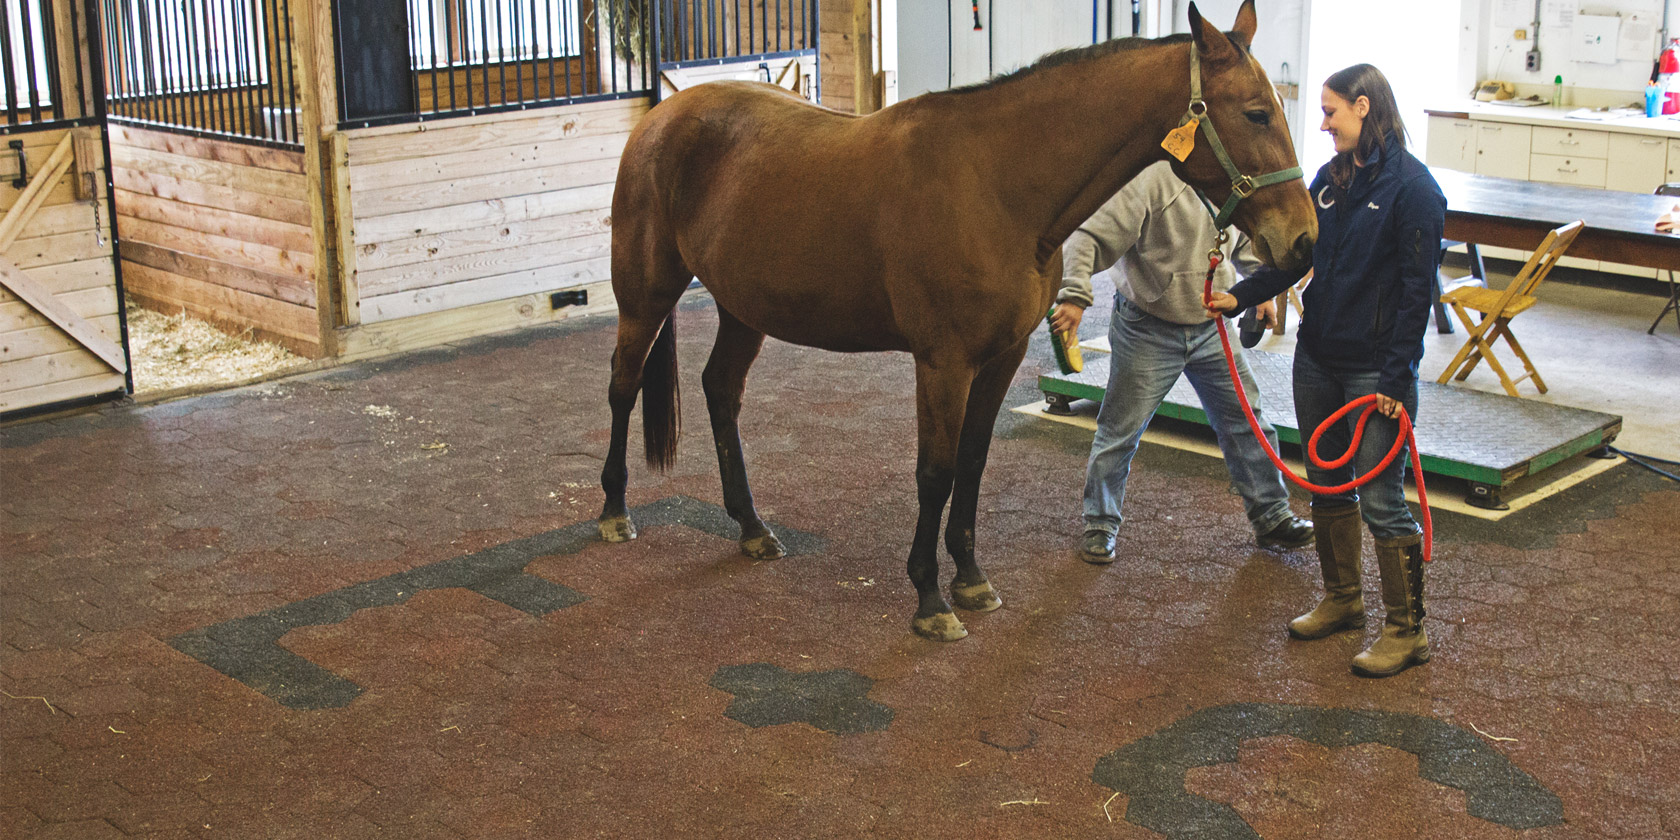 Red Barn Rubberized pavers flooring provides cushioning and traction for both horses and humans.